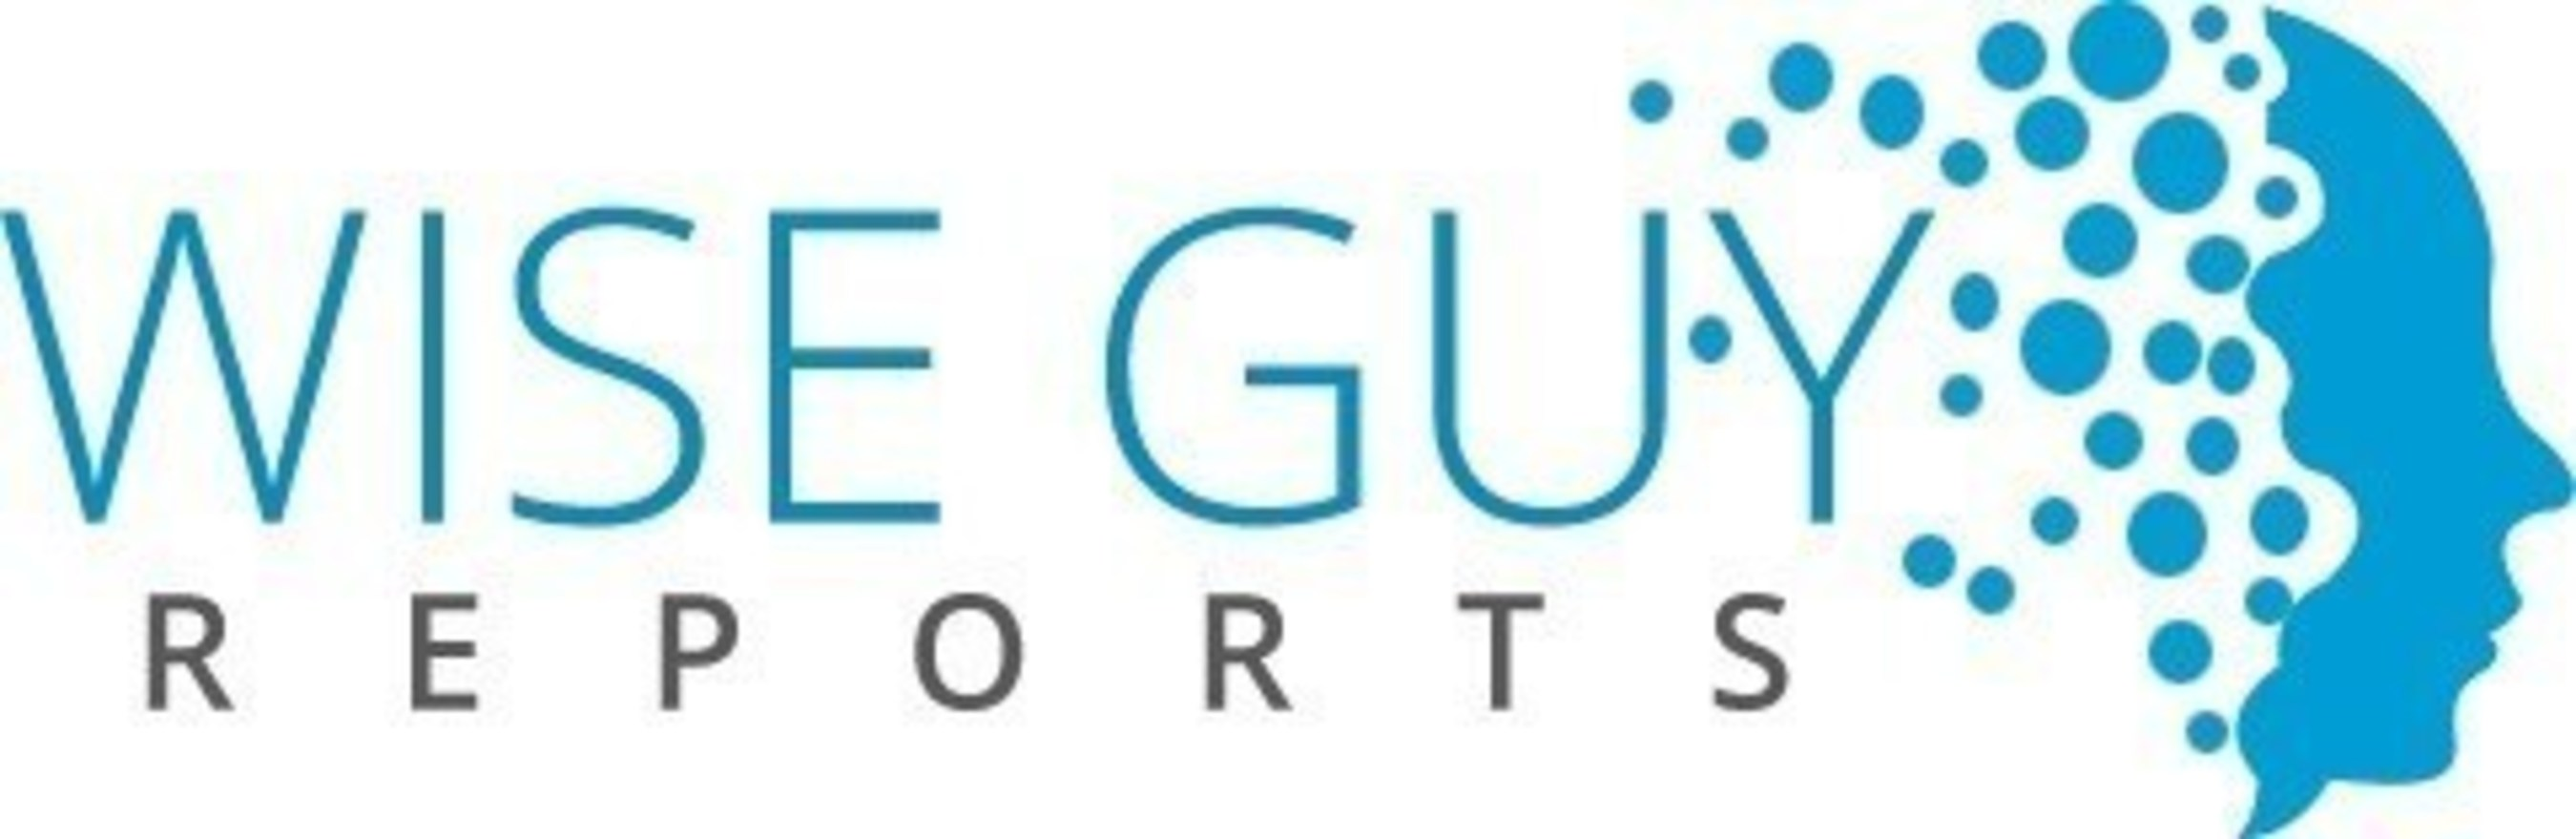 3rd Platform Market (Cloud, Big Data, Social, Mobile) Trends and Forecast to 2020 Research Report Available at WiseGuyReports.com